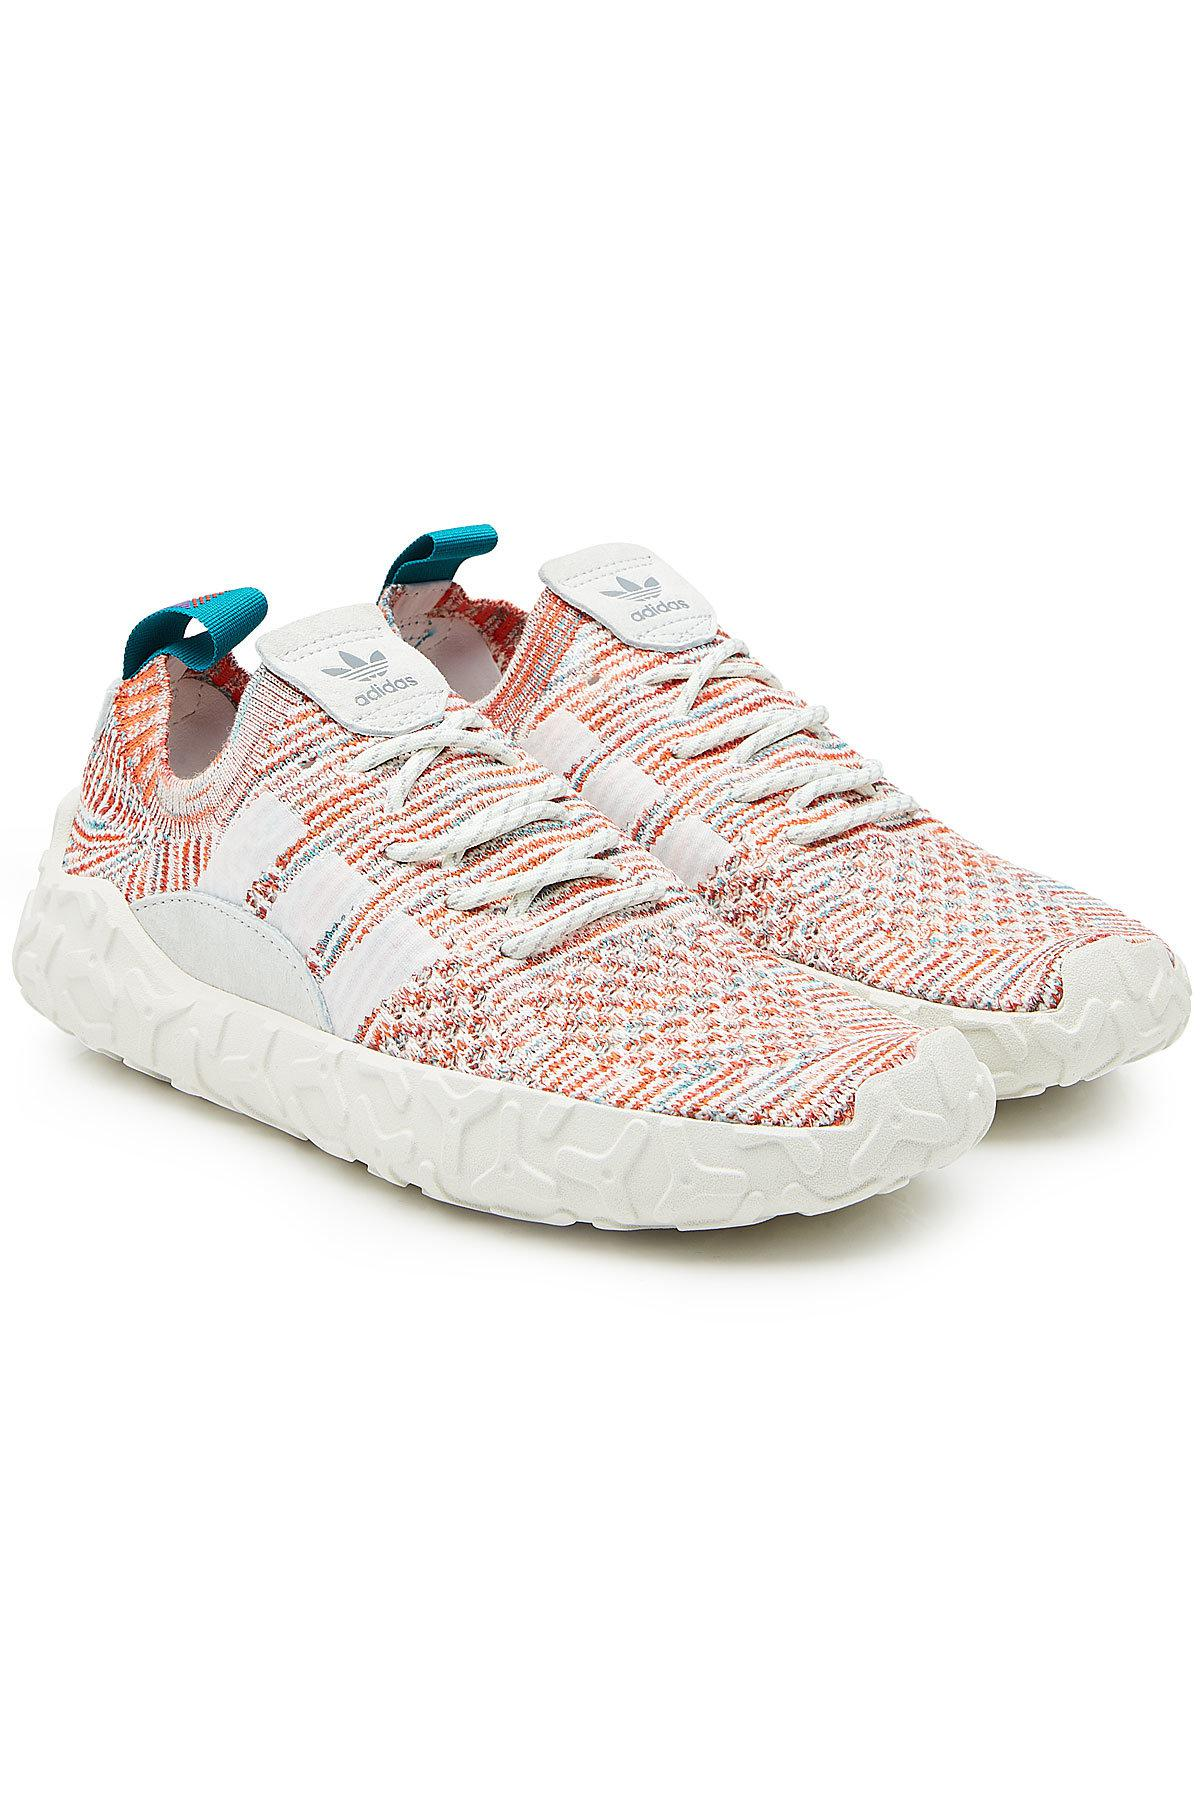 factory authentic 76b5b 9ee4b Lyst - adidas Originals Atric F22 Primeknit Sneakers for Men